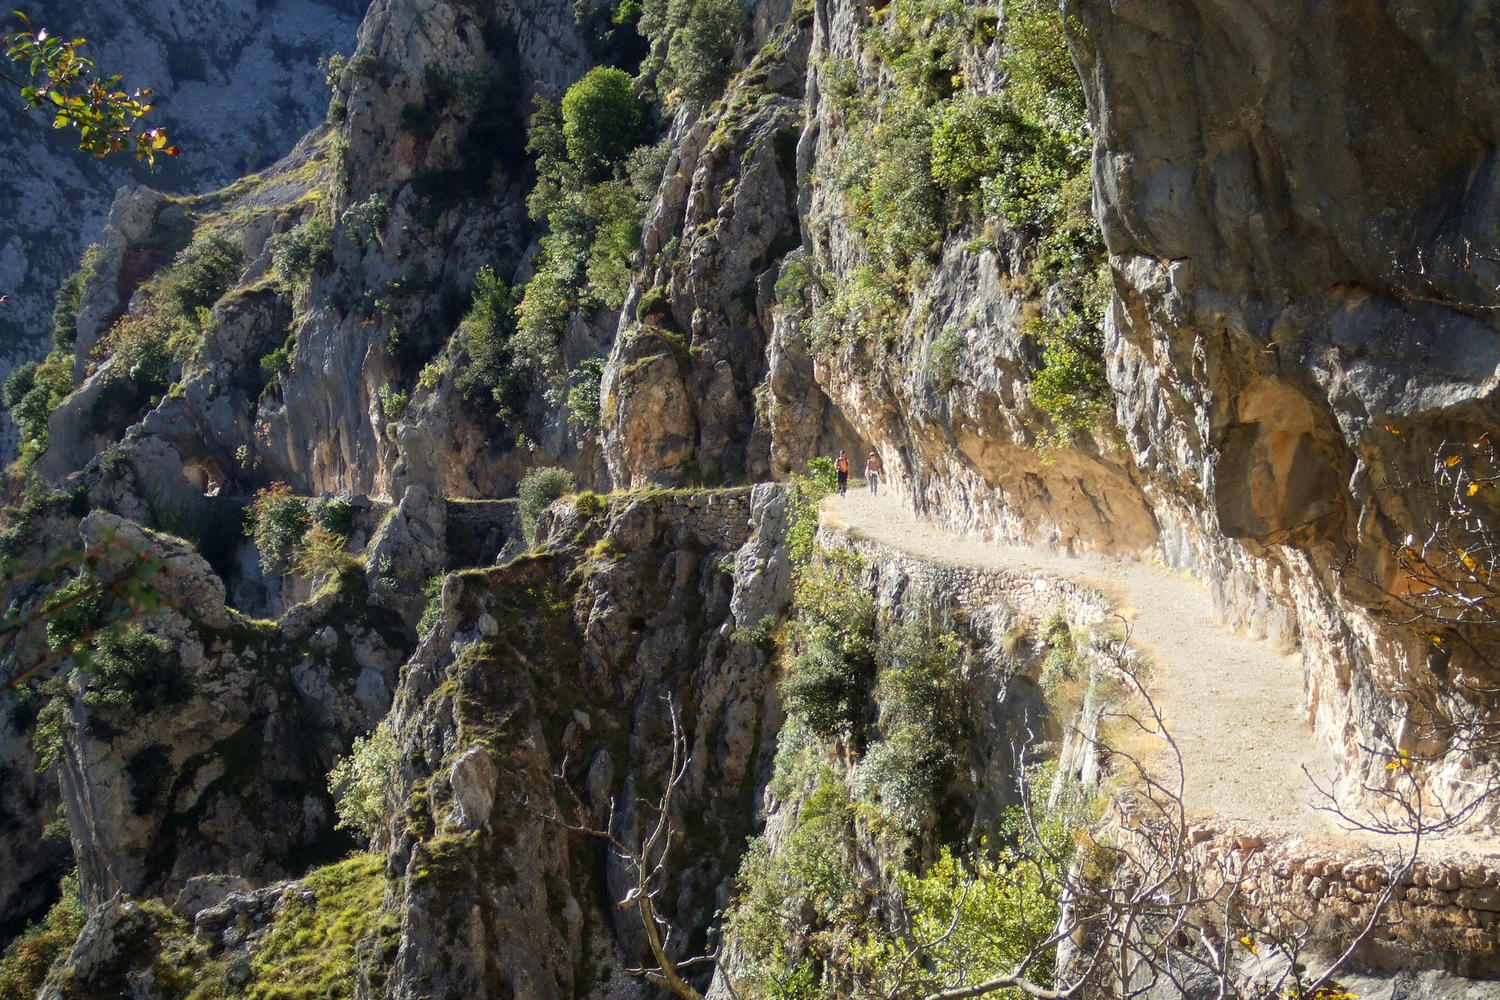 The spectacular pathway through the Cares Gorge in the Picos de Europa, Spain